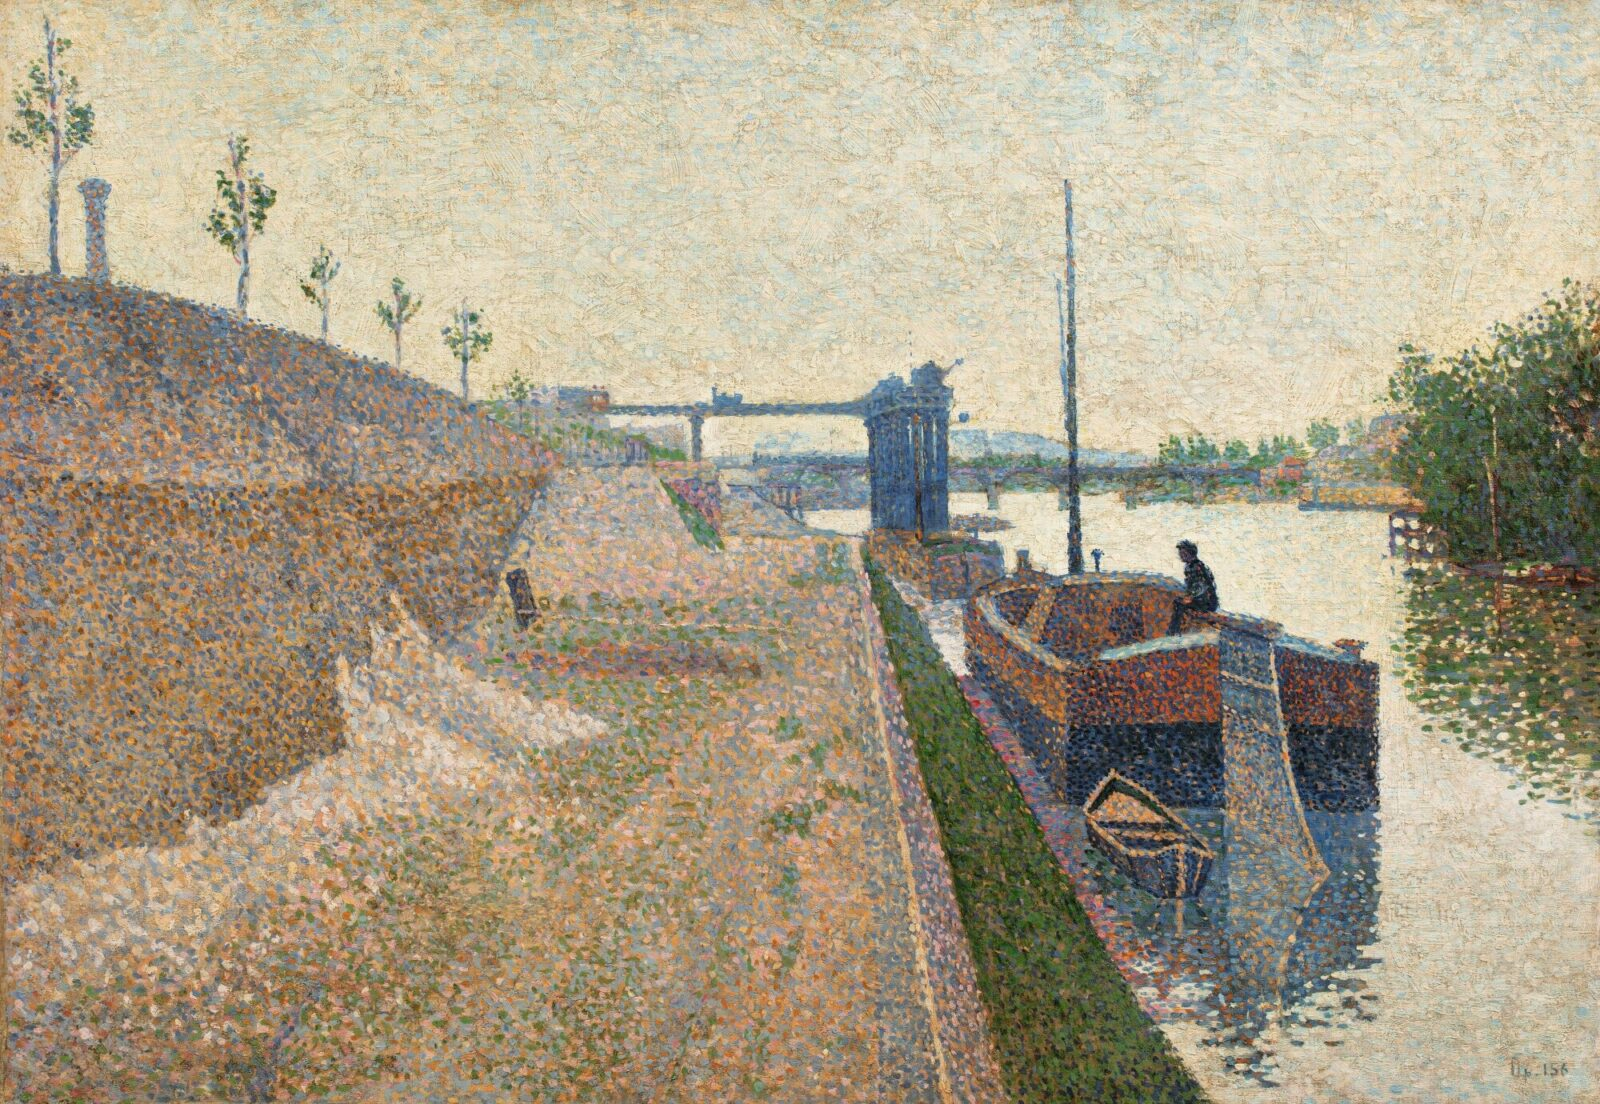 The paintings of Pissarro and Cinac, stolen by the Nazis, will be auctioned for the first time